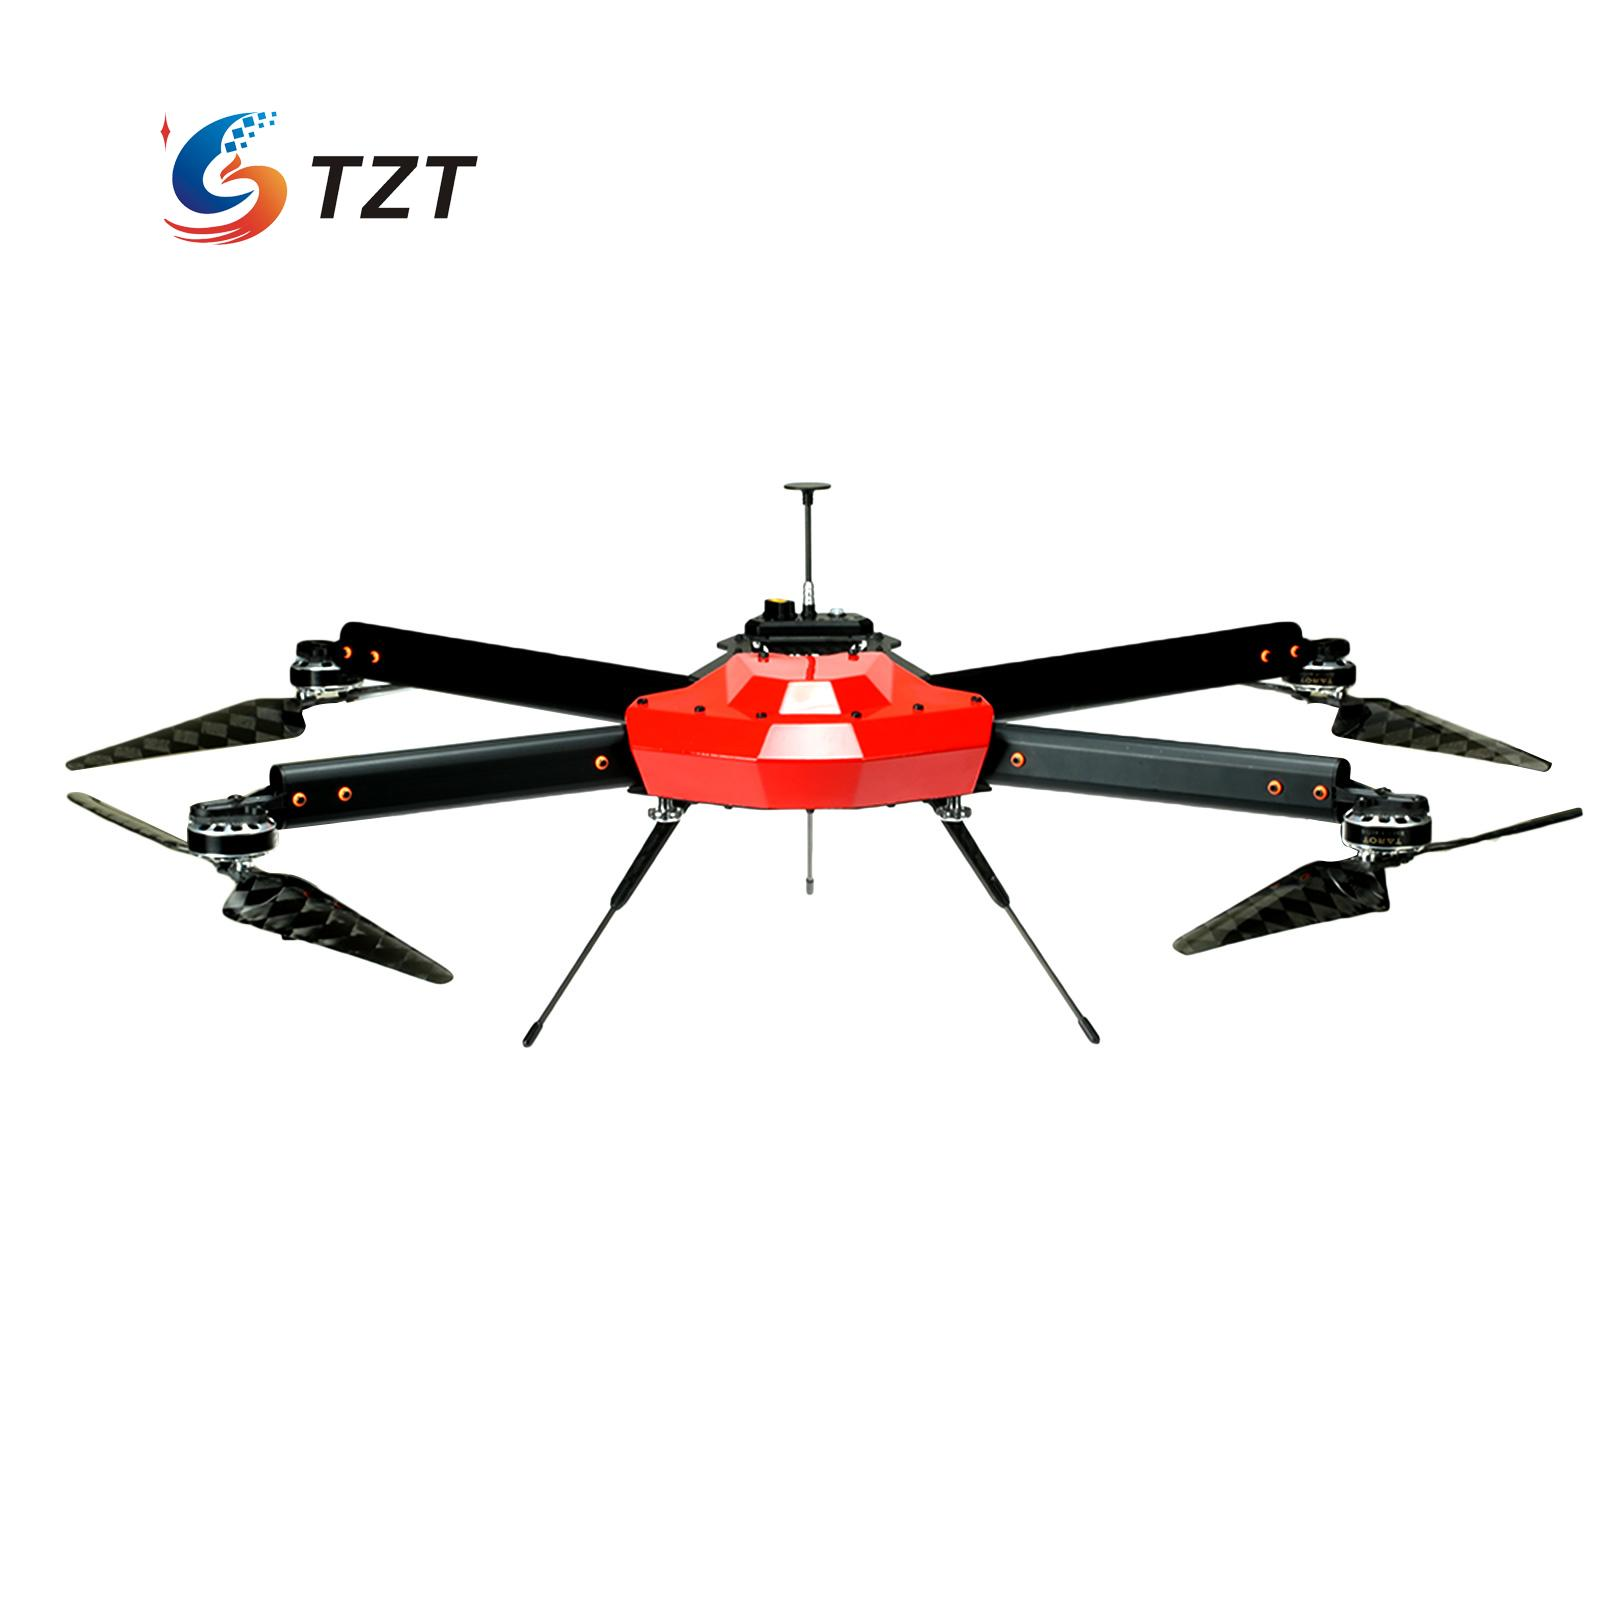 Tarot Peeper I Drone 750mm FPV Quadcopter Combo TL750S1 tarot peeper i drone 750mm fpv quadcopter combo tl750s1